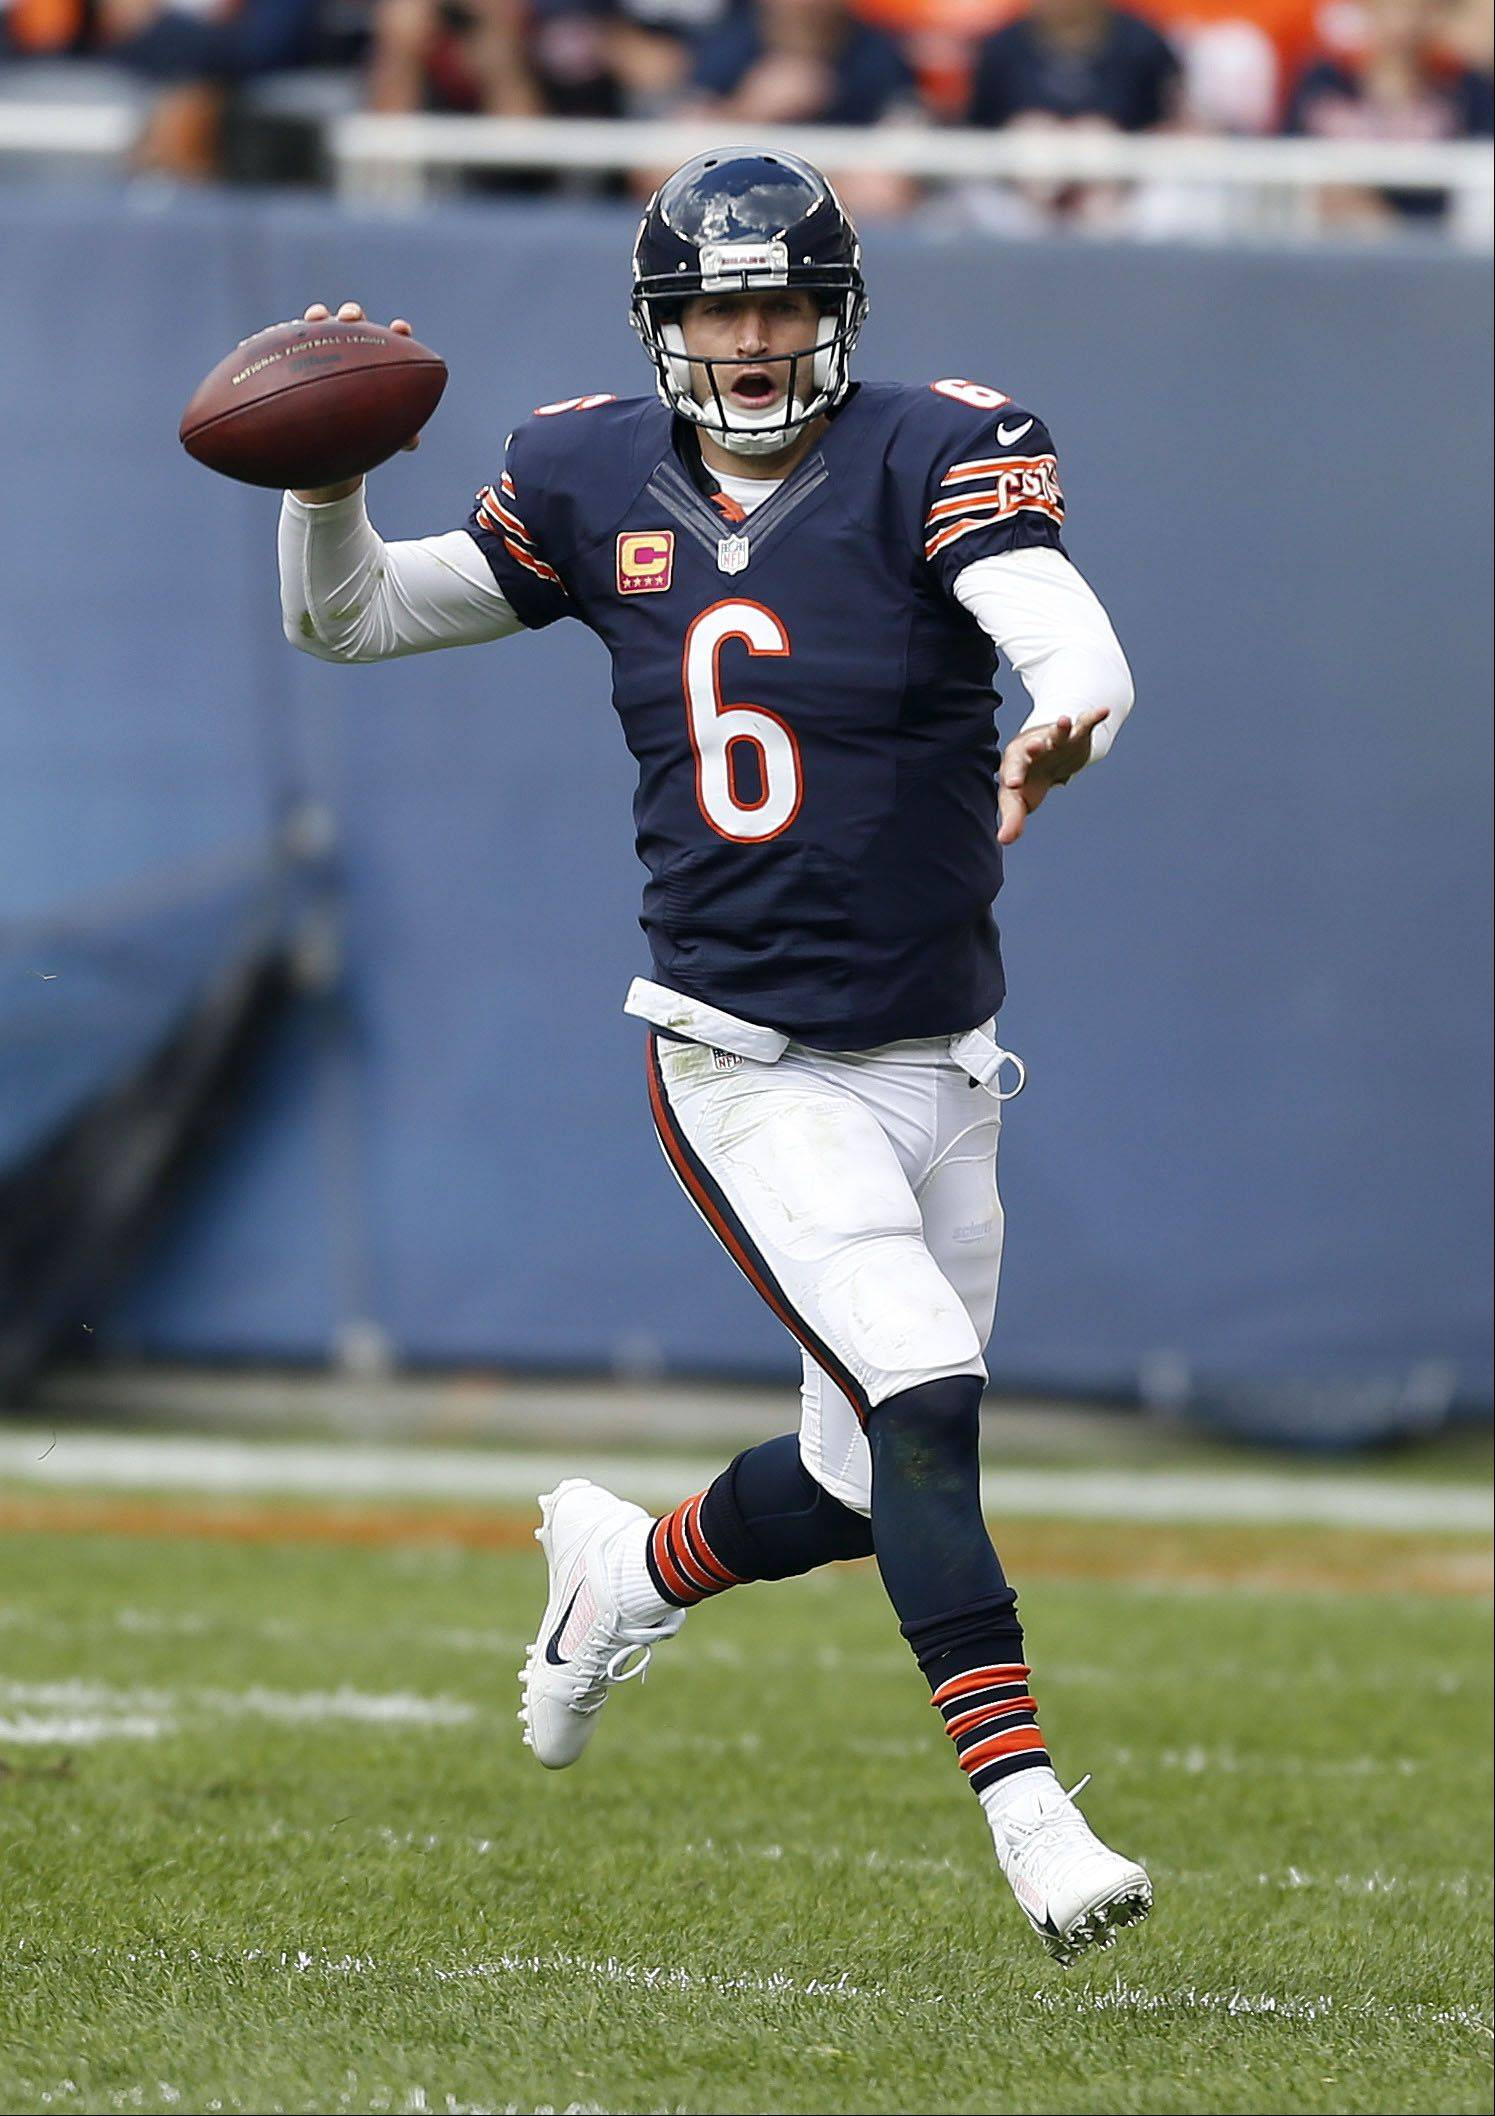 Chicago Bears quarterback Jay Cutler looks to pass Sunday at Soldier Field in Chicago.